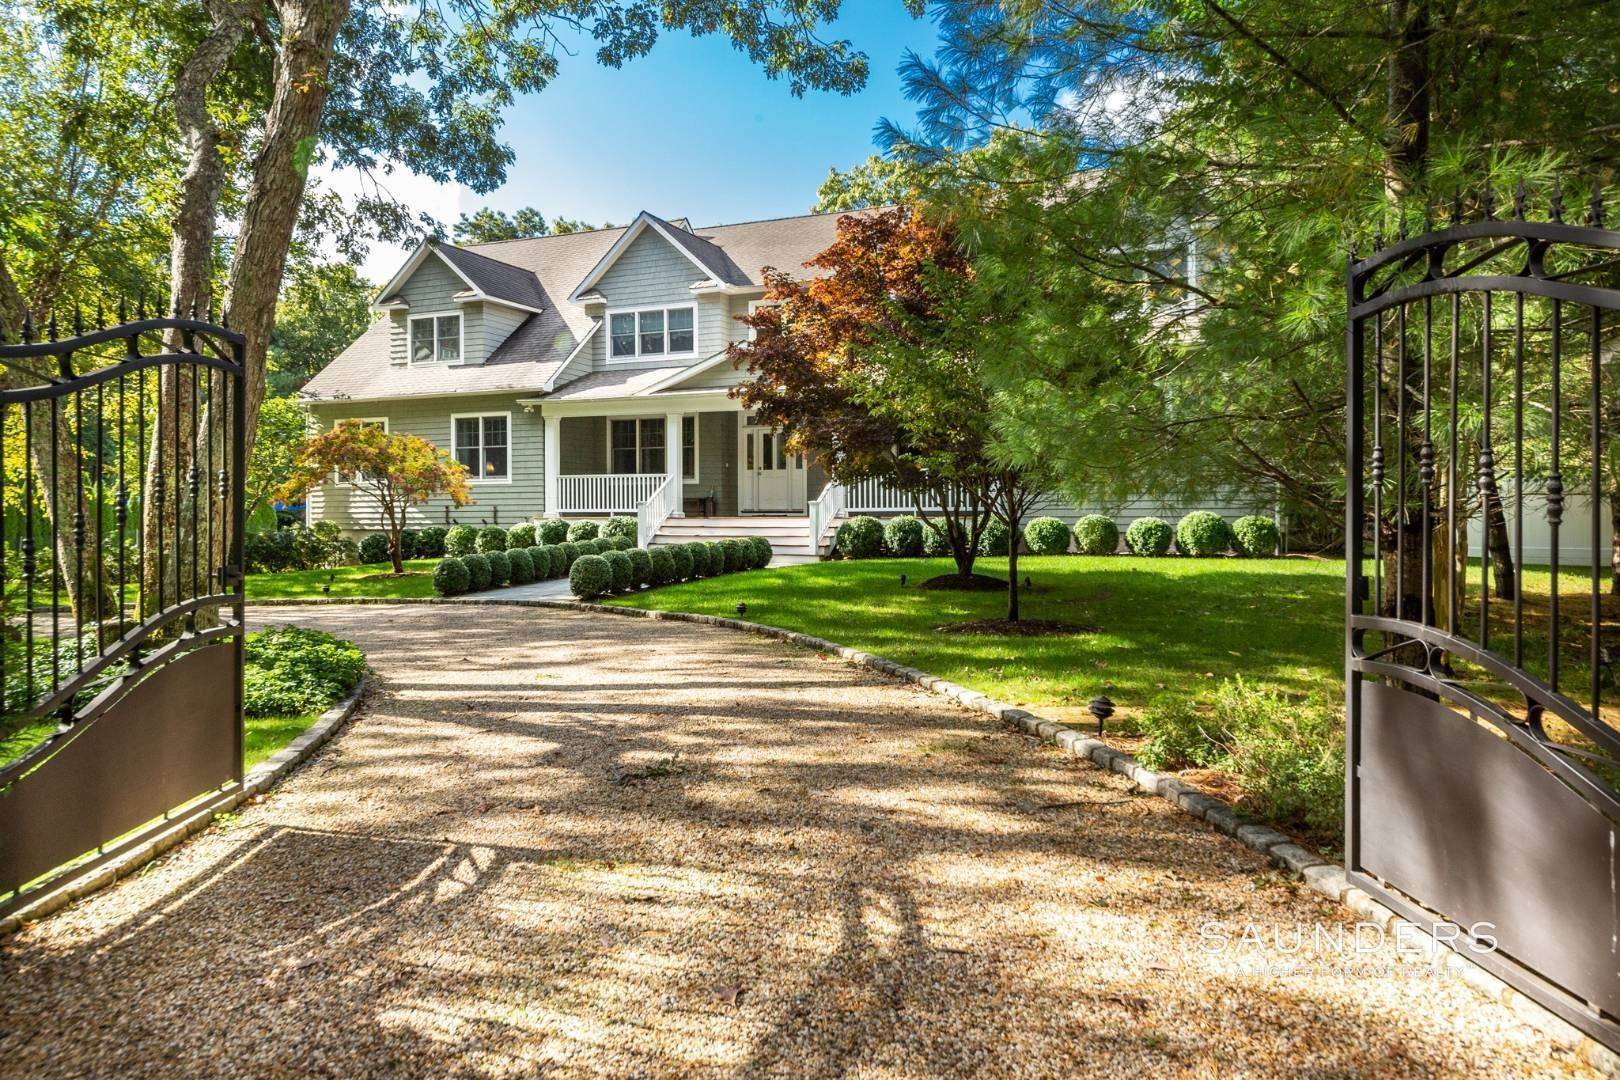 Single Family Homes at Perfect Summer Getaway East Hampton, East Hampton Town, NY 11937